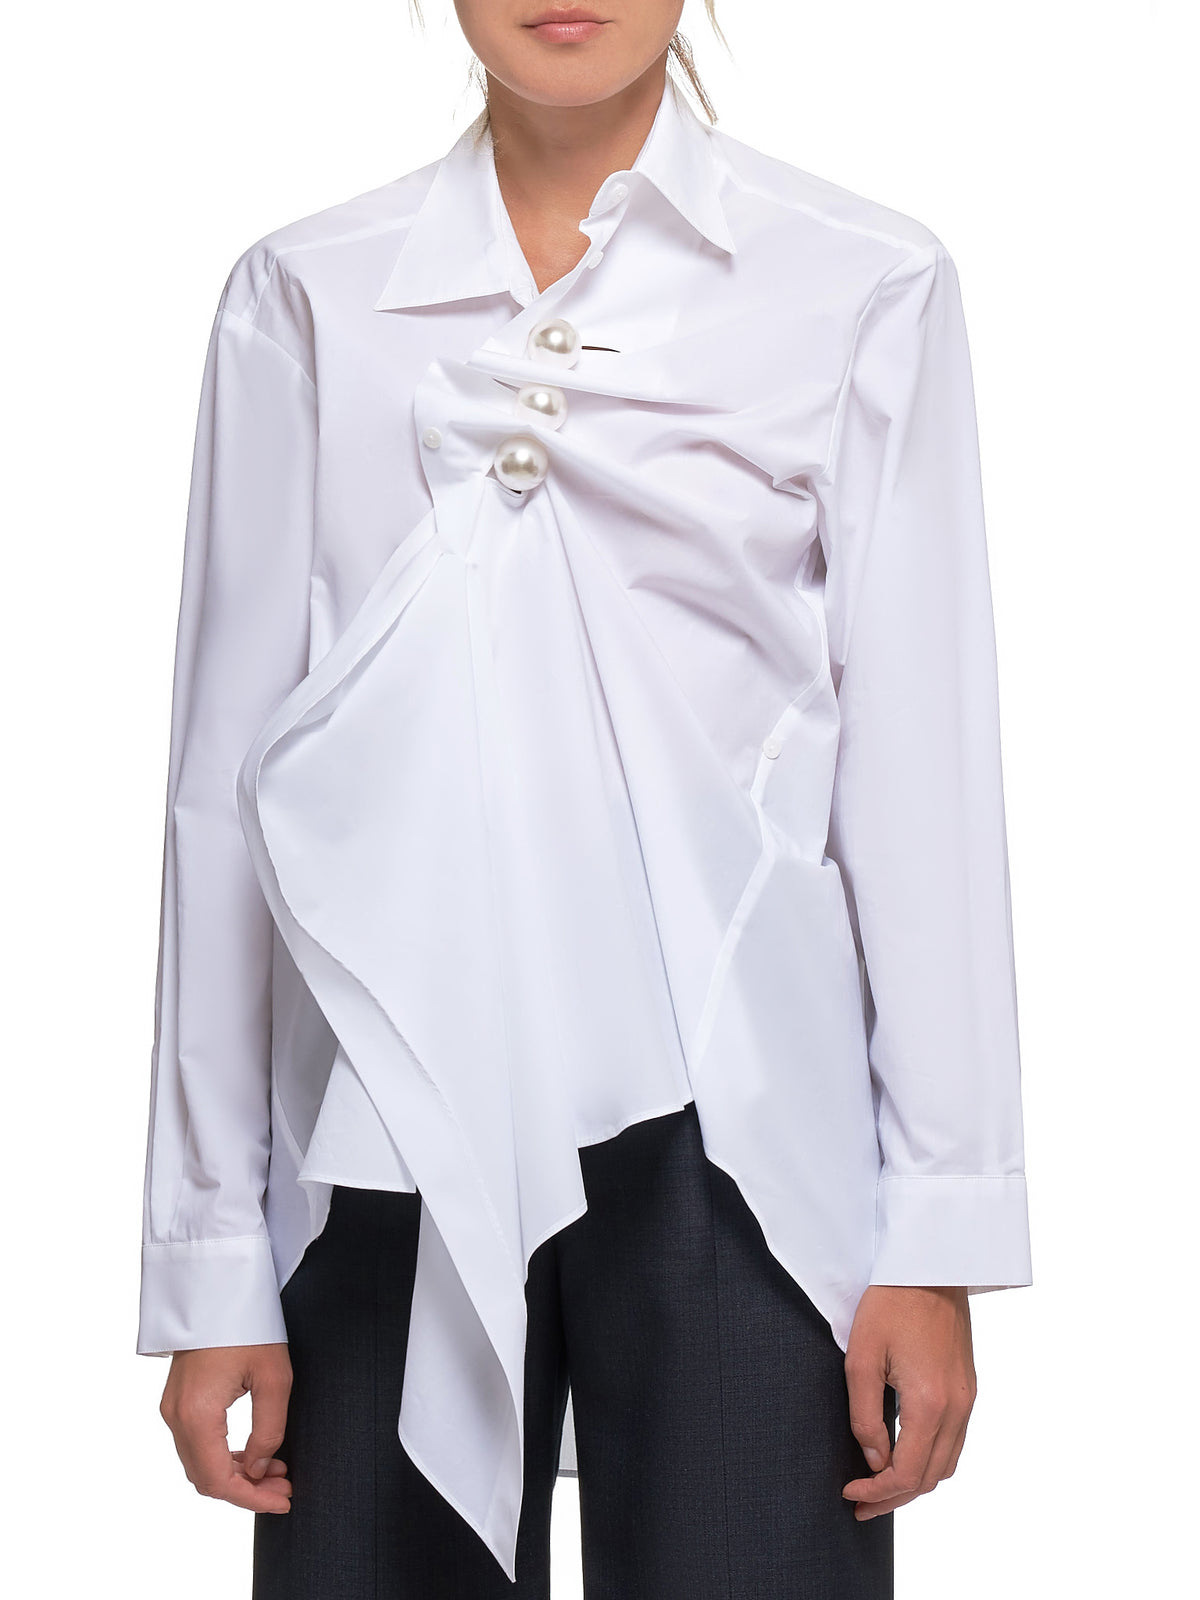 Collared Shirt (FW19-SH08-WHITE)